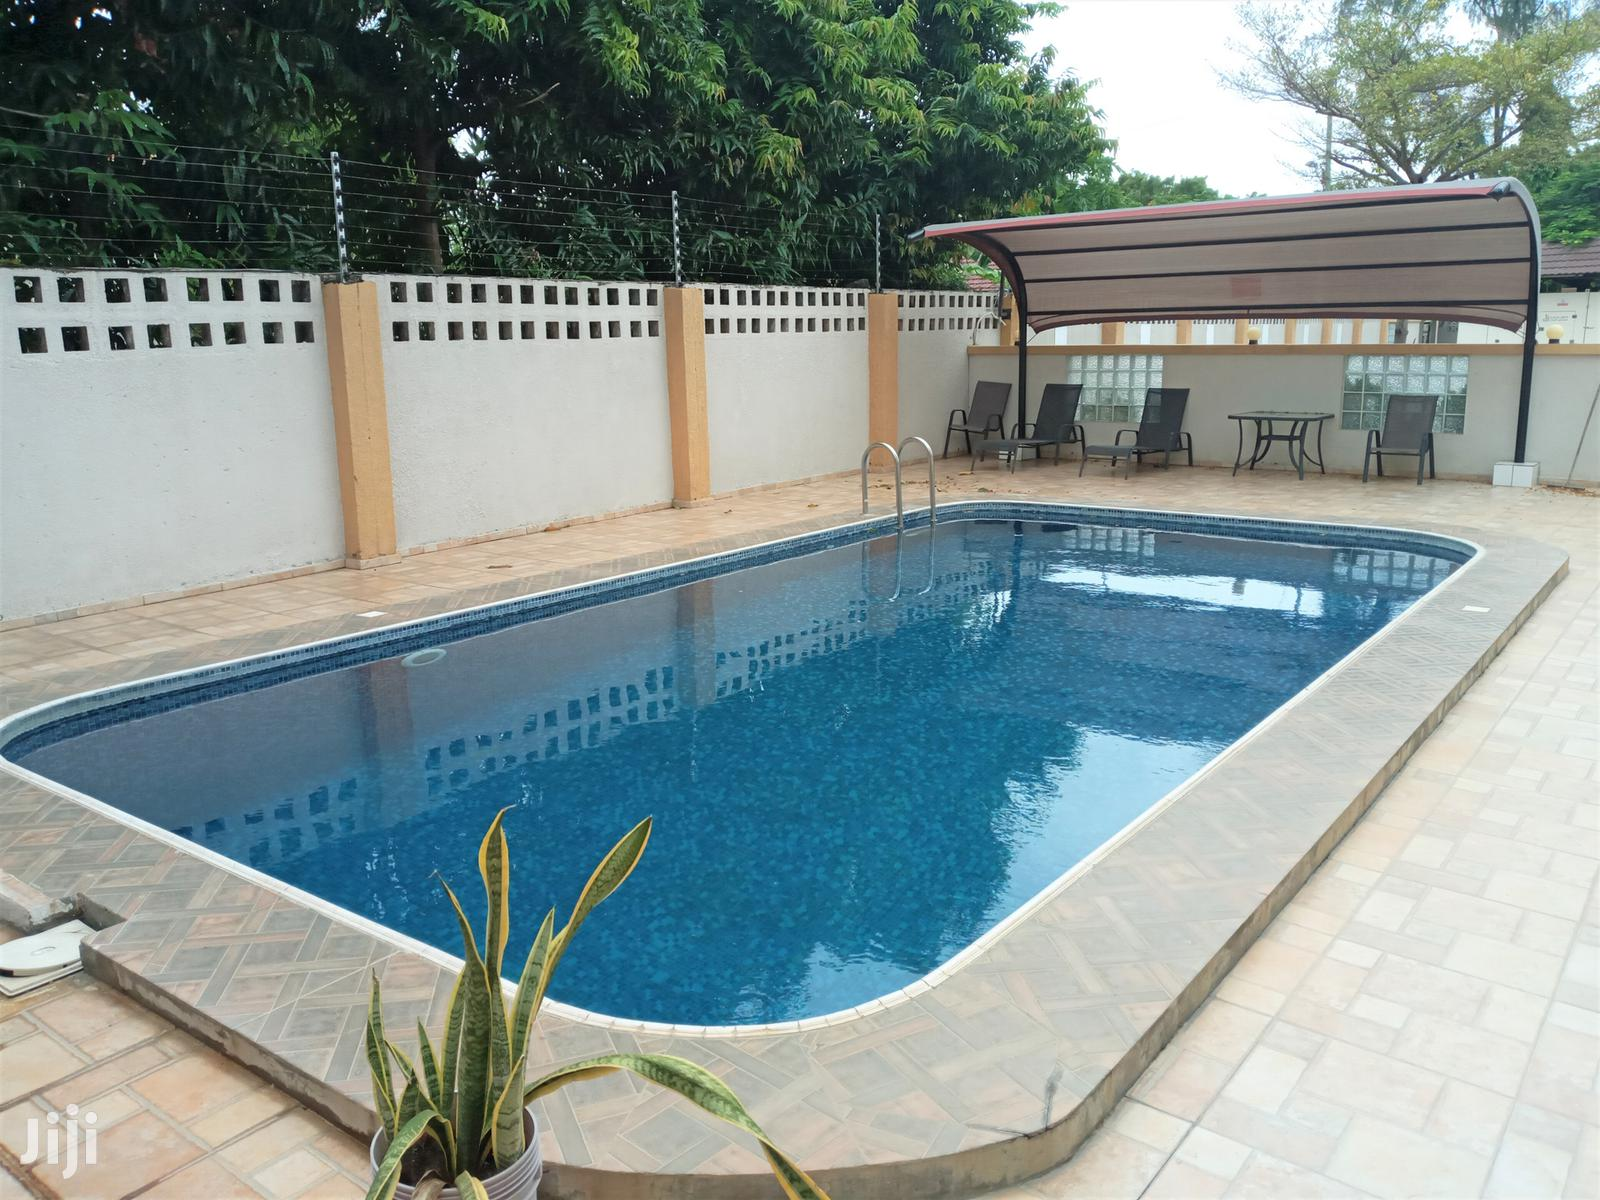 4 Bedroom Modern Luxury Villa House For Rent In Masaki | Houses & Apartments For Rent for sale in Msasani, Kinondoni, Tanzania